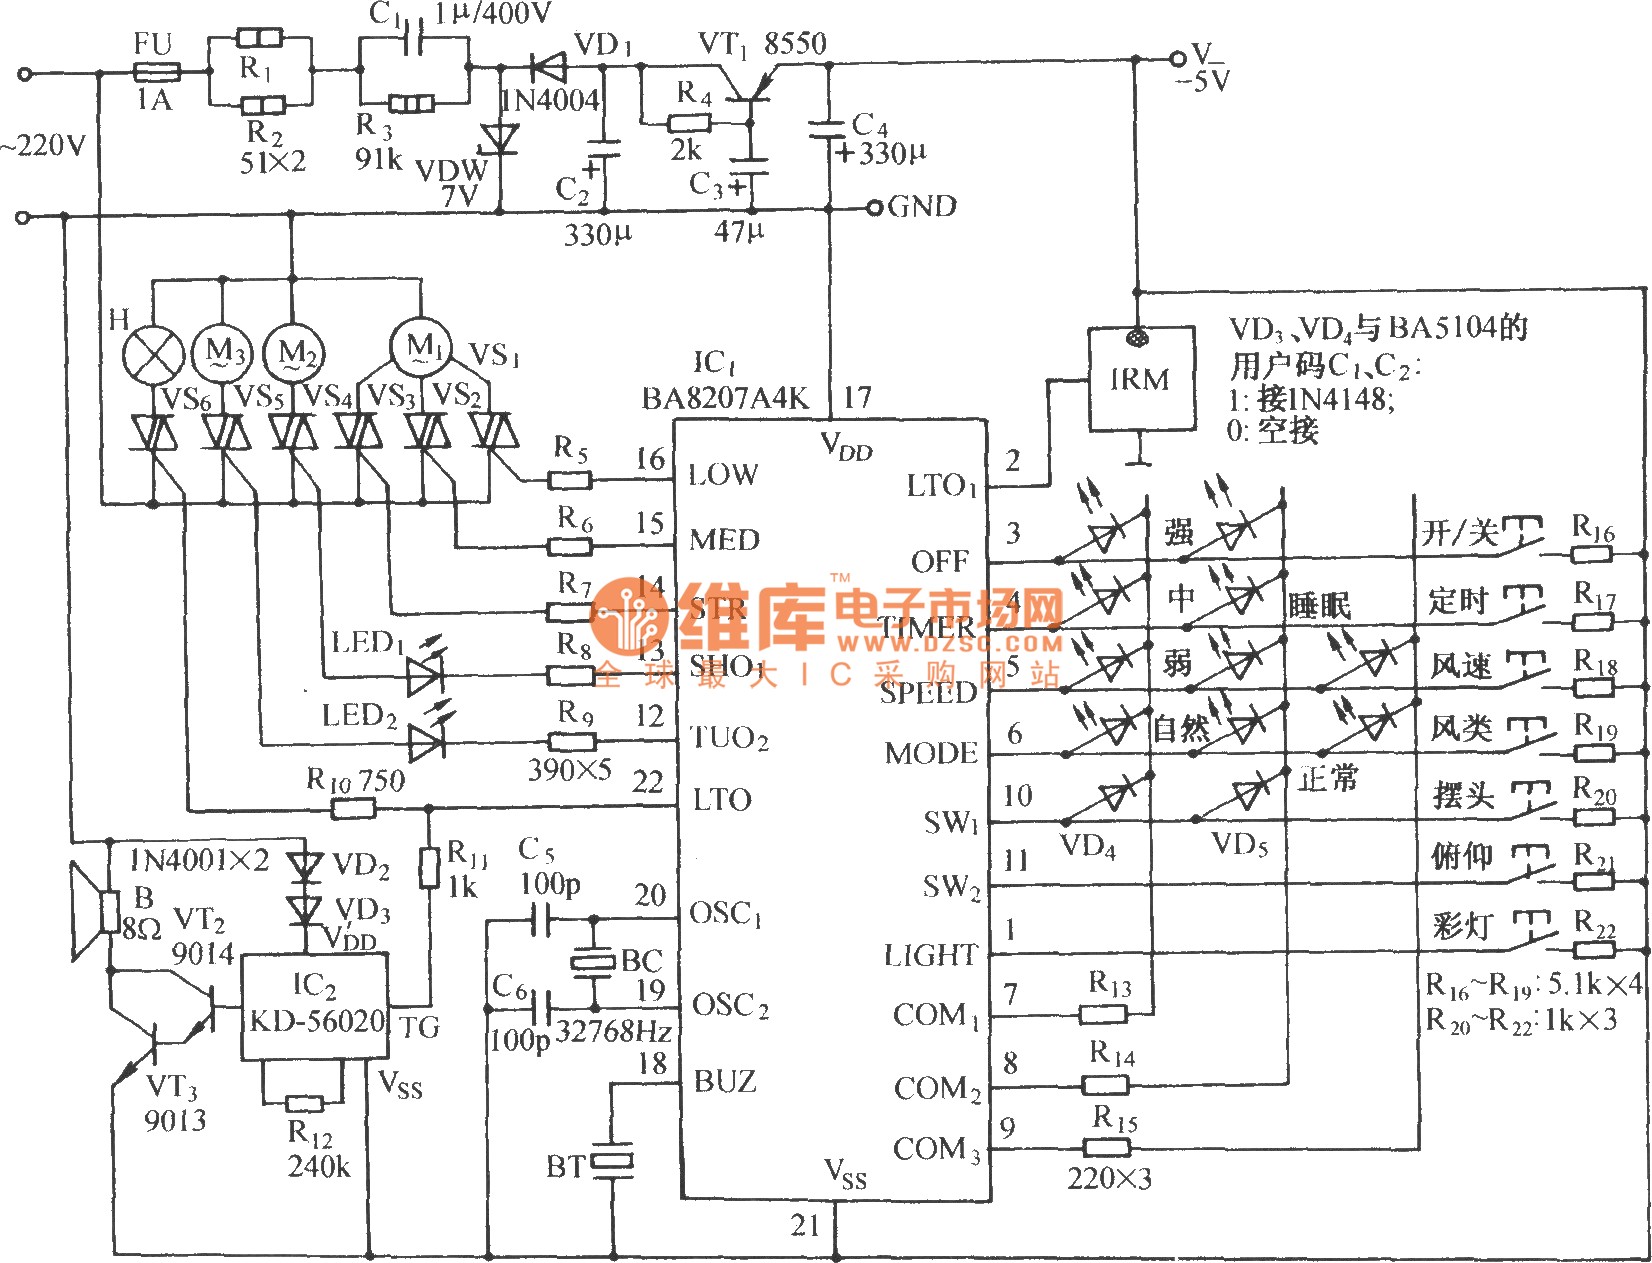 Ba5104ba8207k Multi Function Infrared Remote Control Electric Fan Circuit Diagram 19 Computerrelatedcircuit With The Sound Of Crickets Ba5104 Coded Transmitter